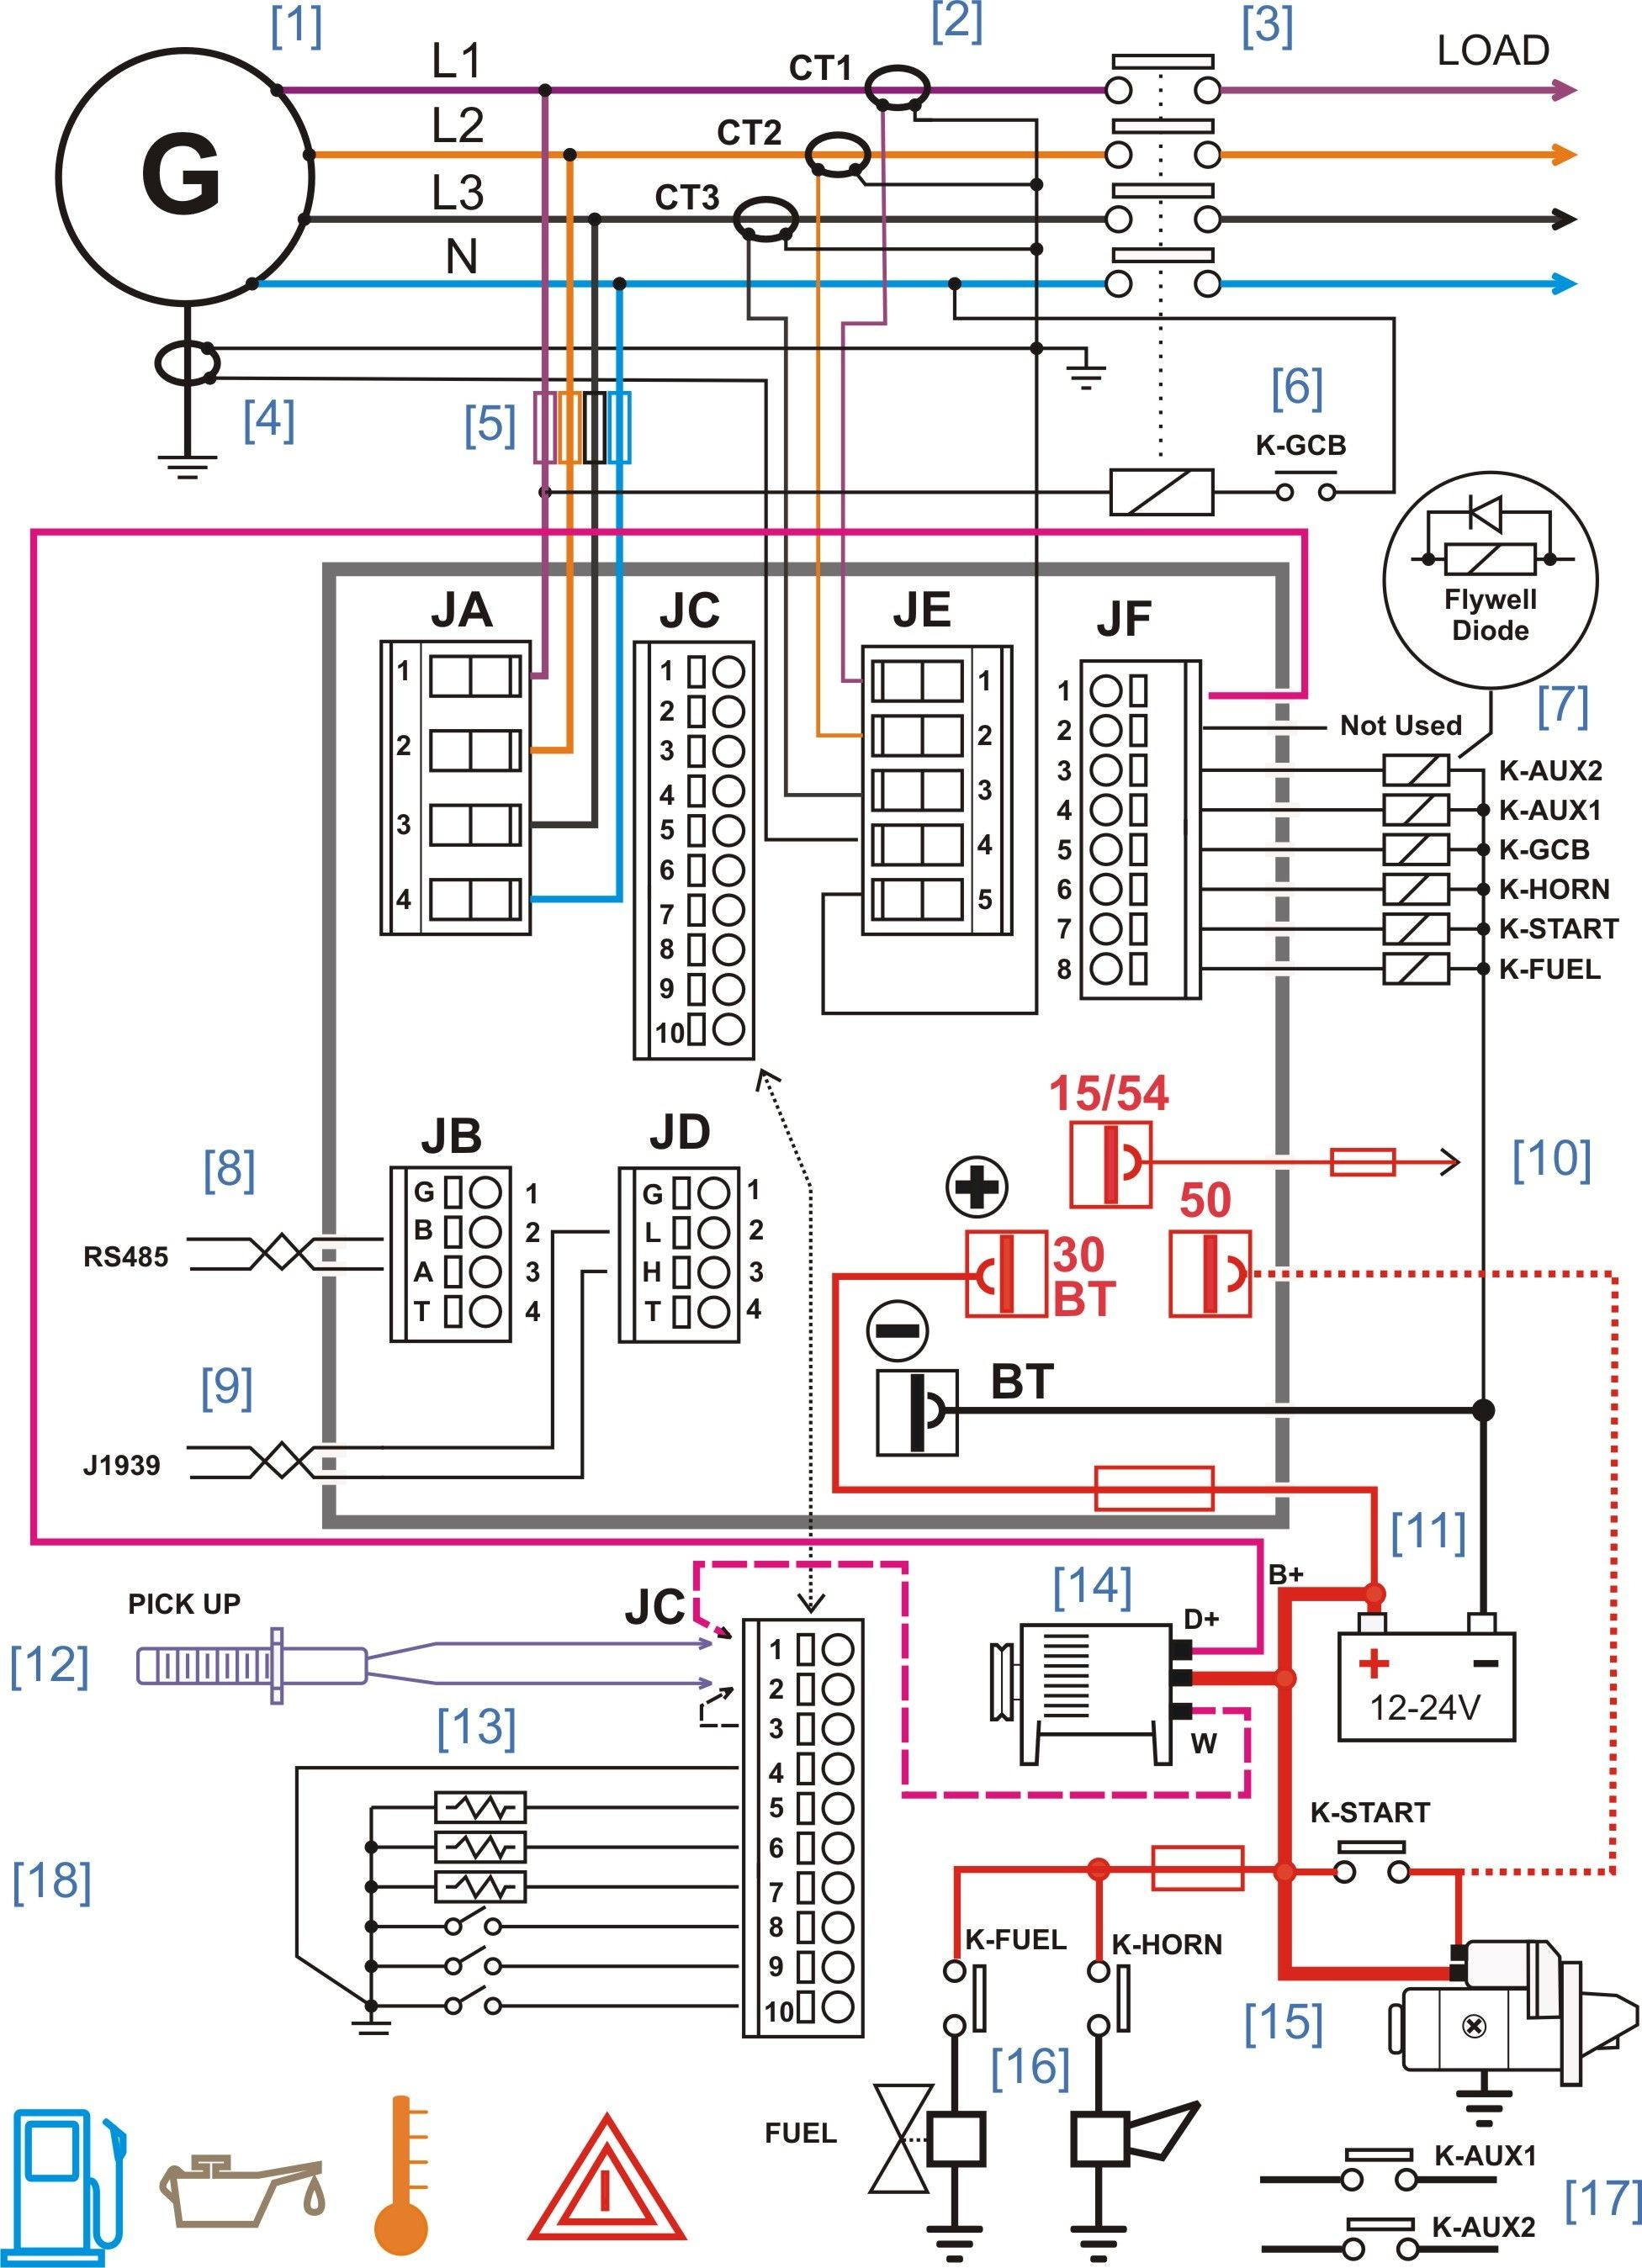 old house electrical wiring diagrams | wiring diagram image